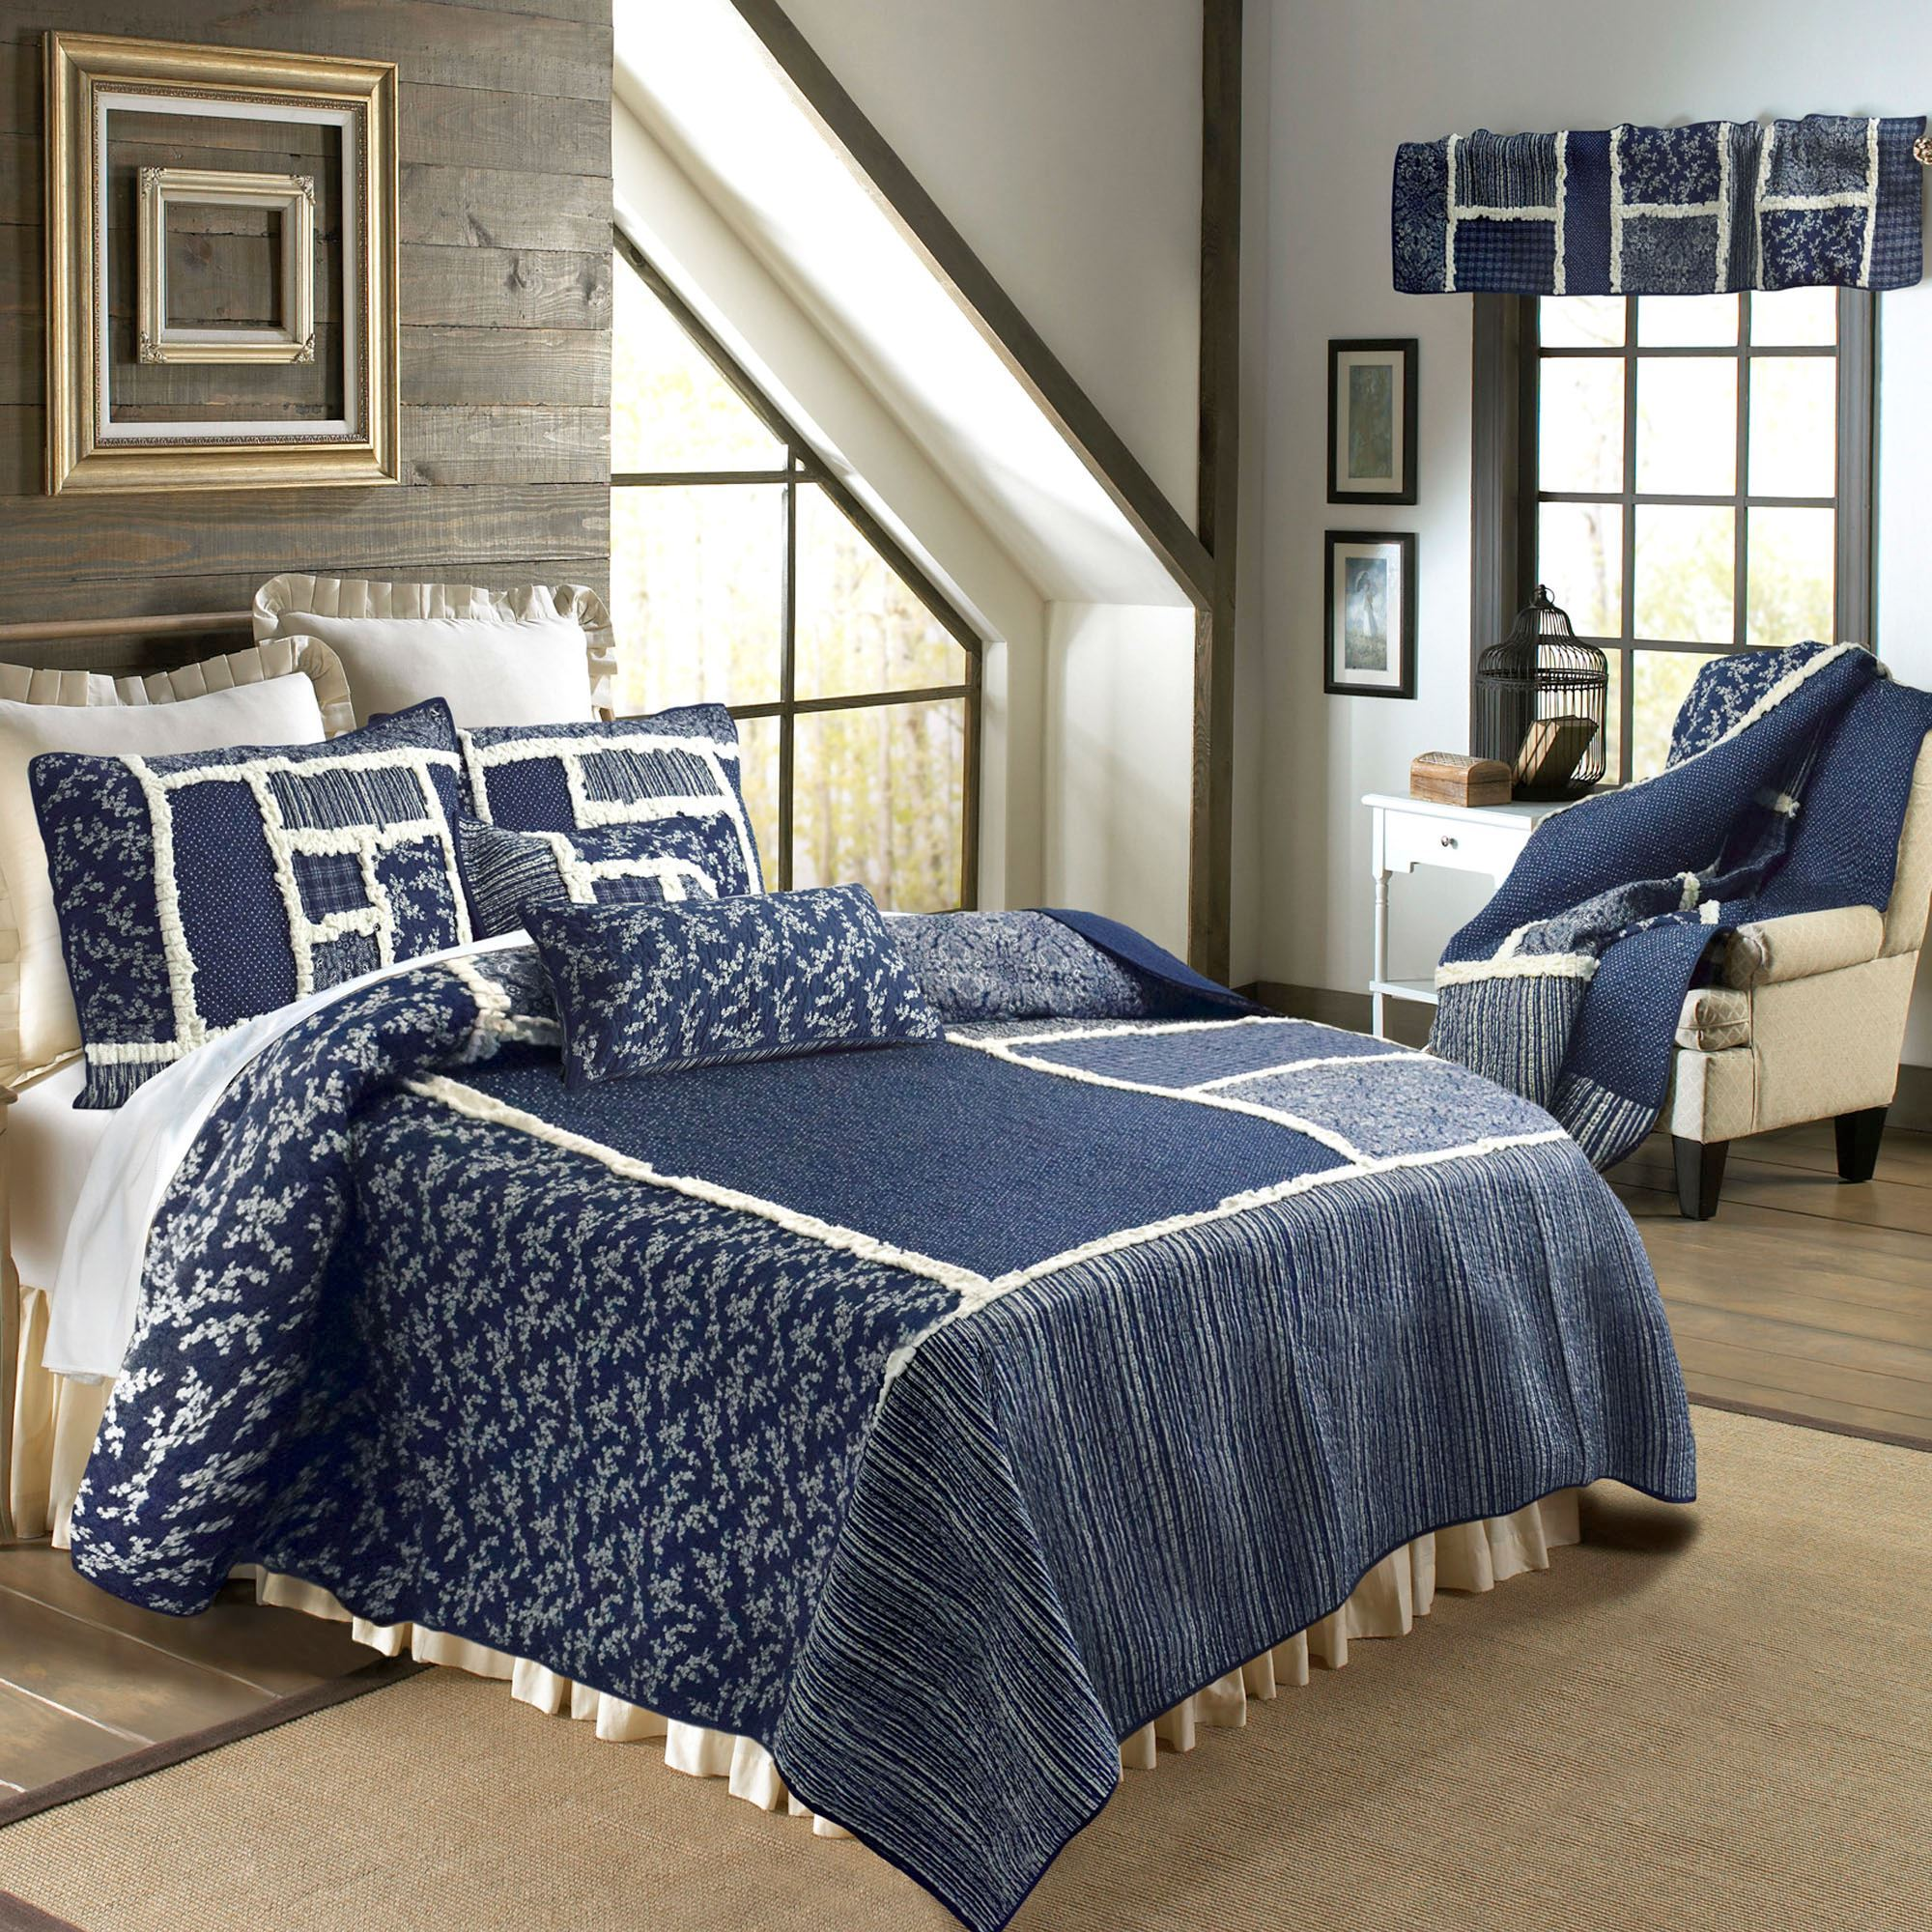 Bandana Block Midnight Blue Quilt Bedding By Donna Sharp